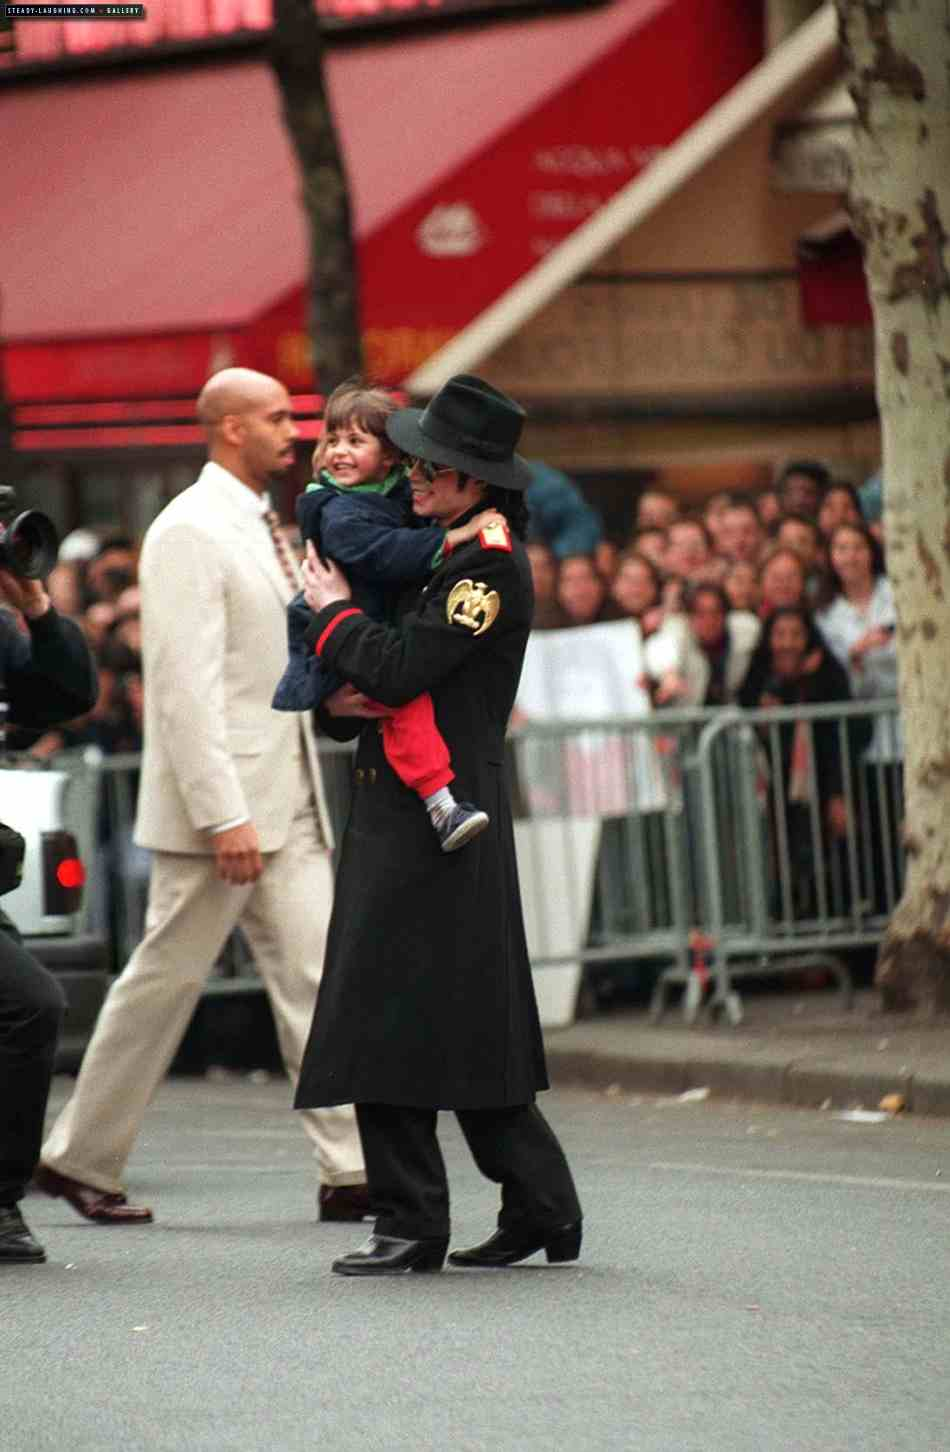 1997 Blood On The Dance Floor Prince Michael Was Born